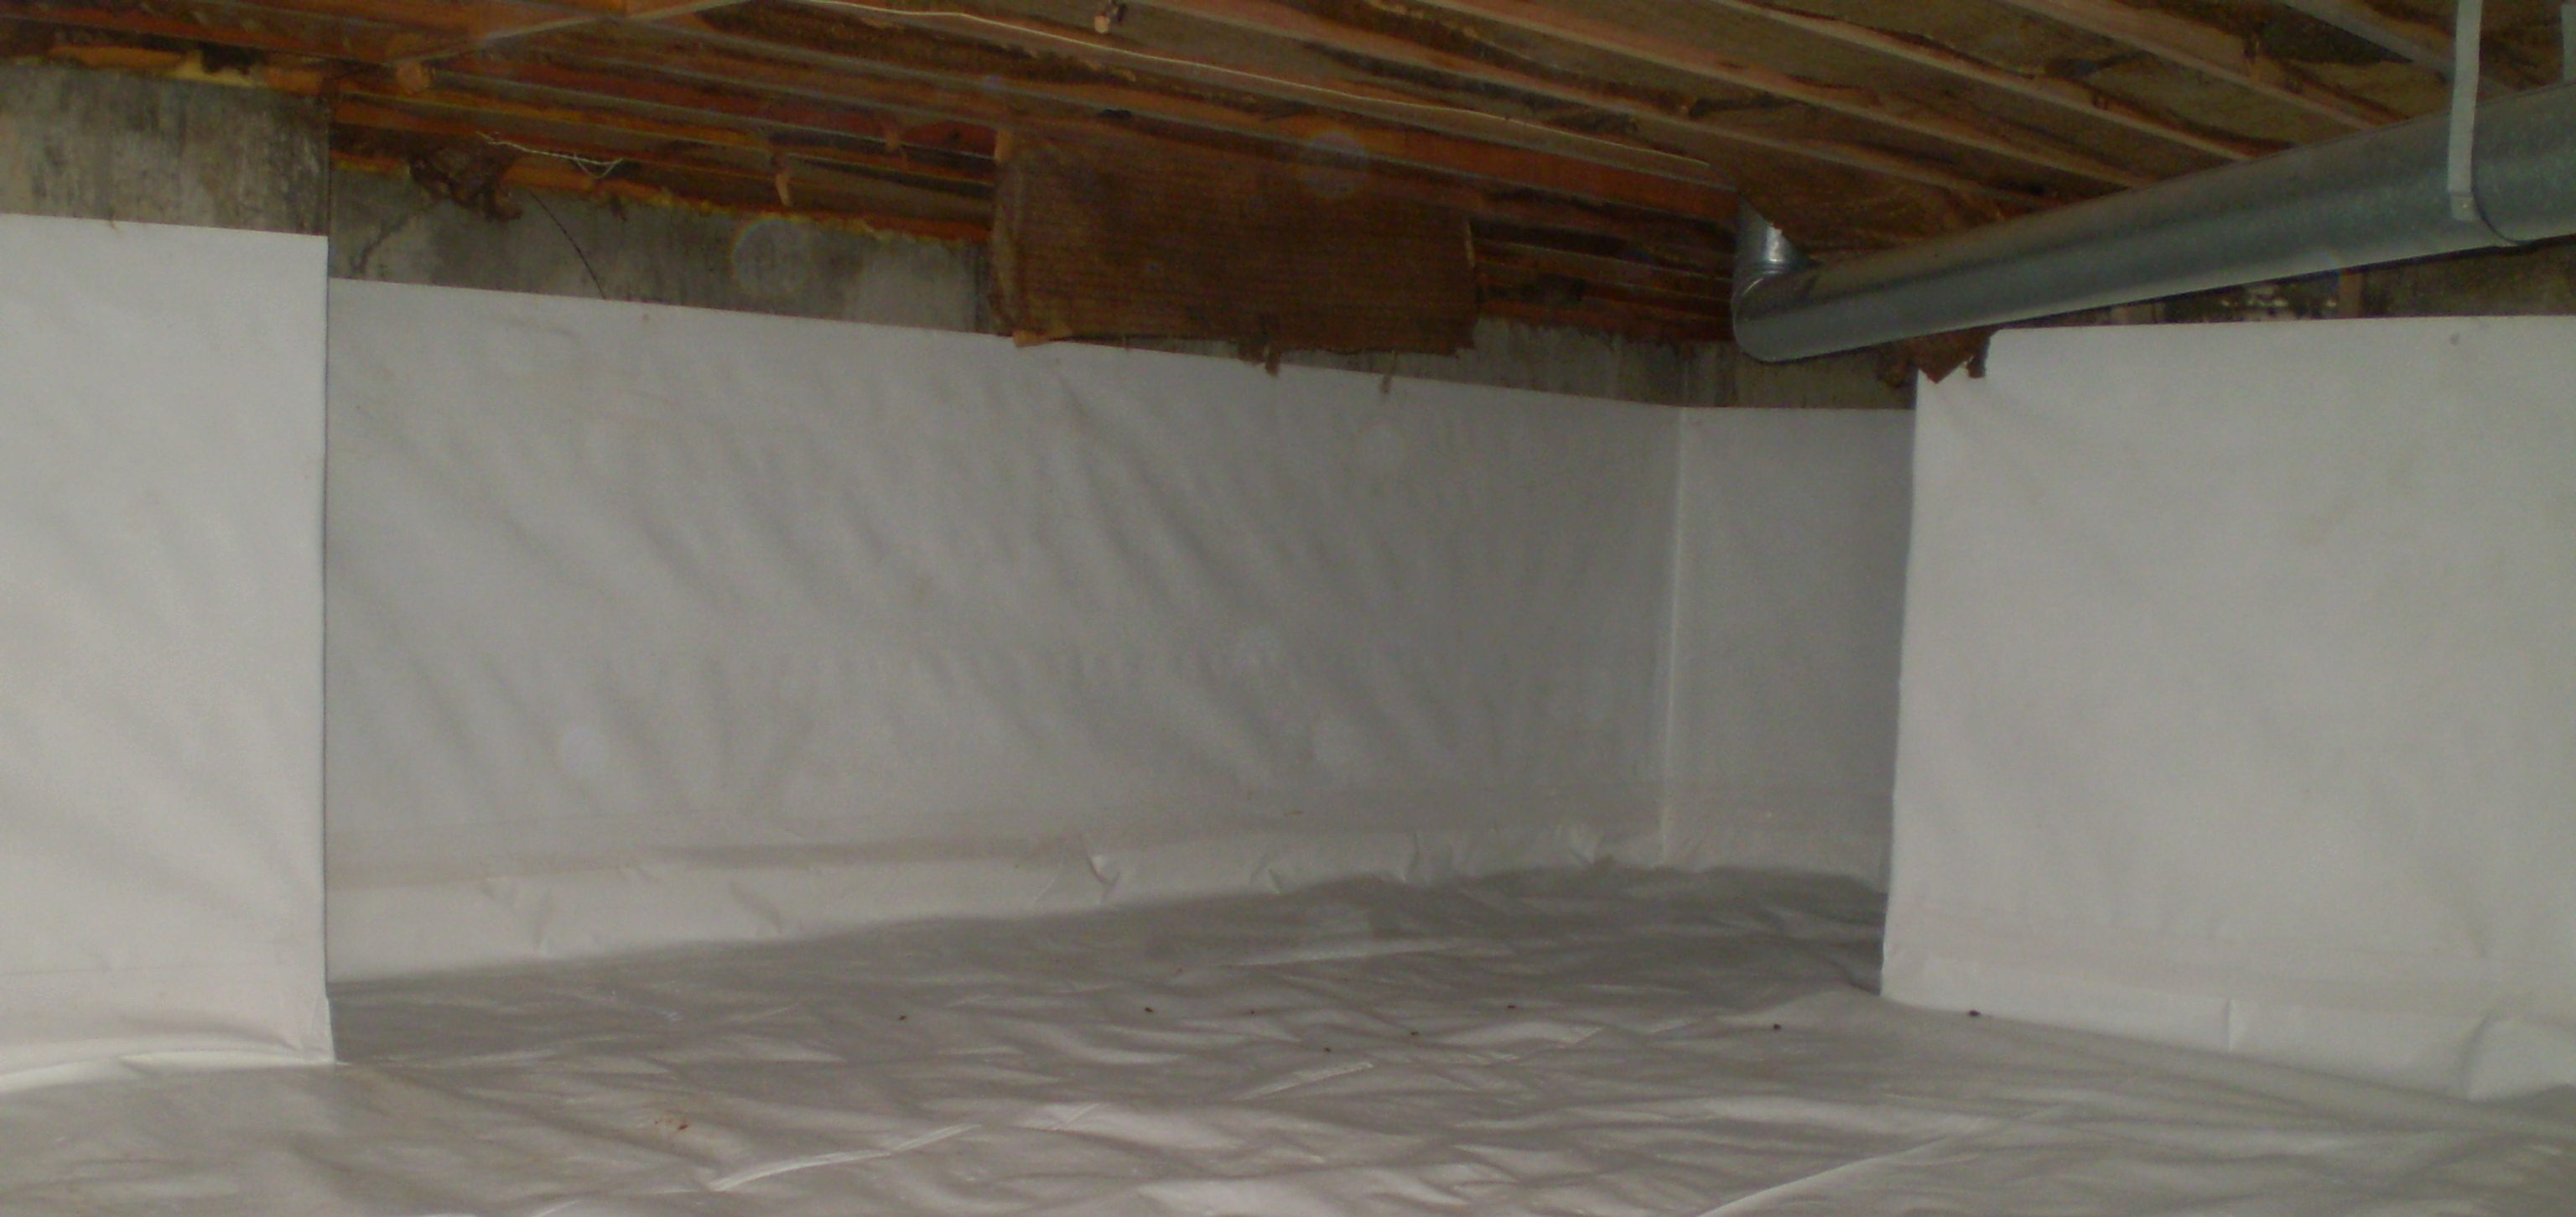 Does Your Crawl Space Need a Vapor Barrier?